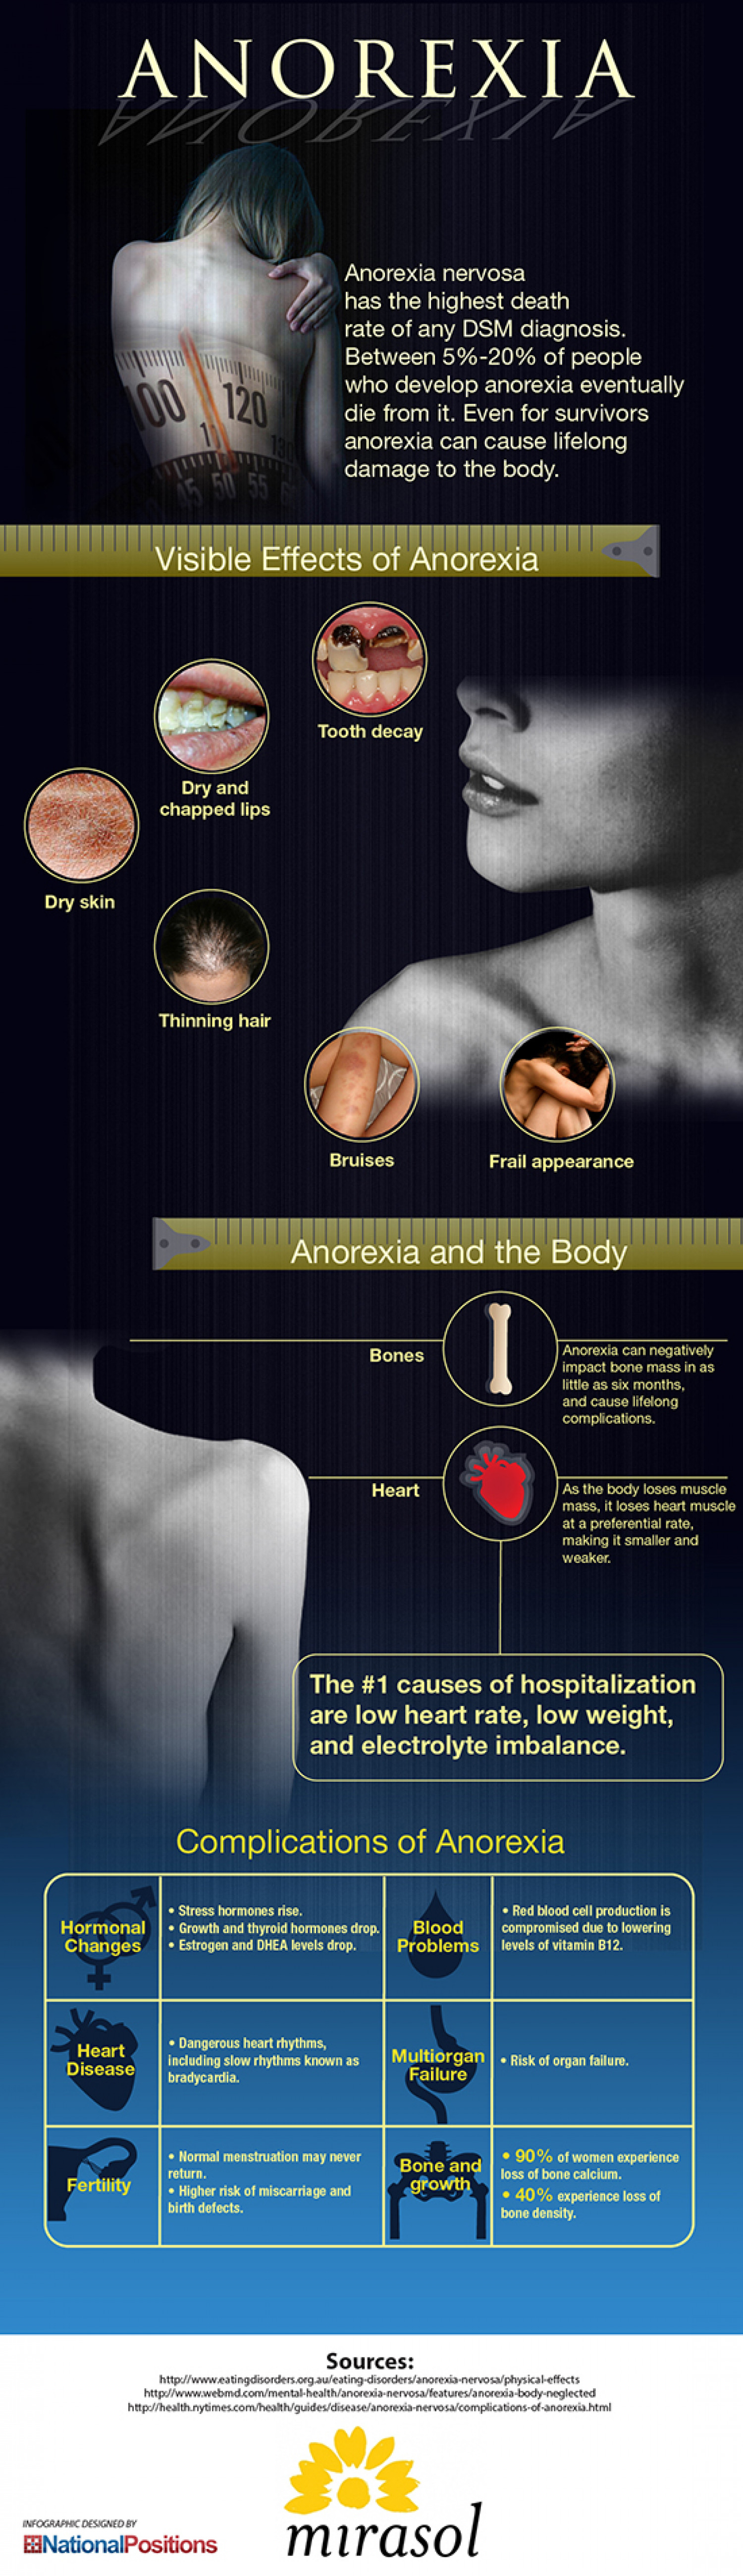 Anorexia and Your Body Infographic